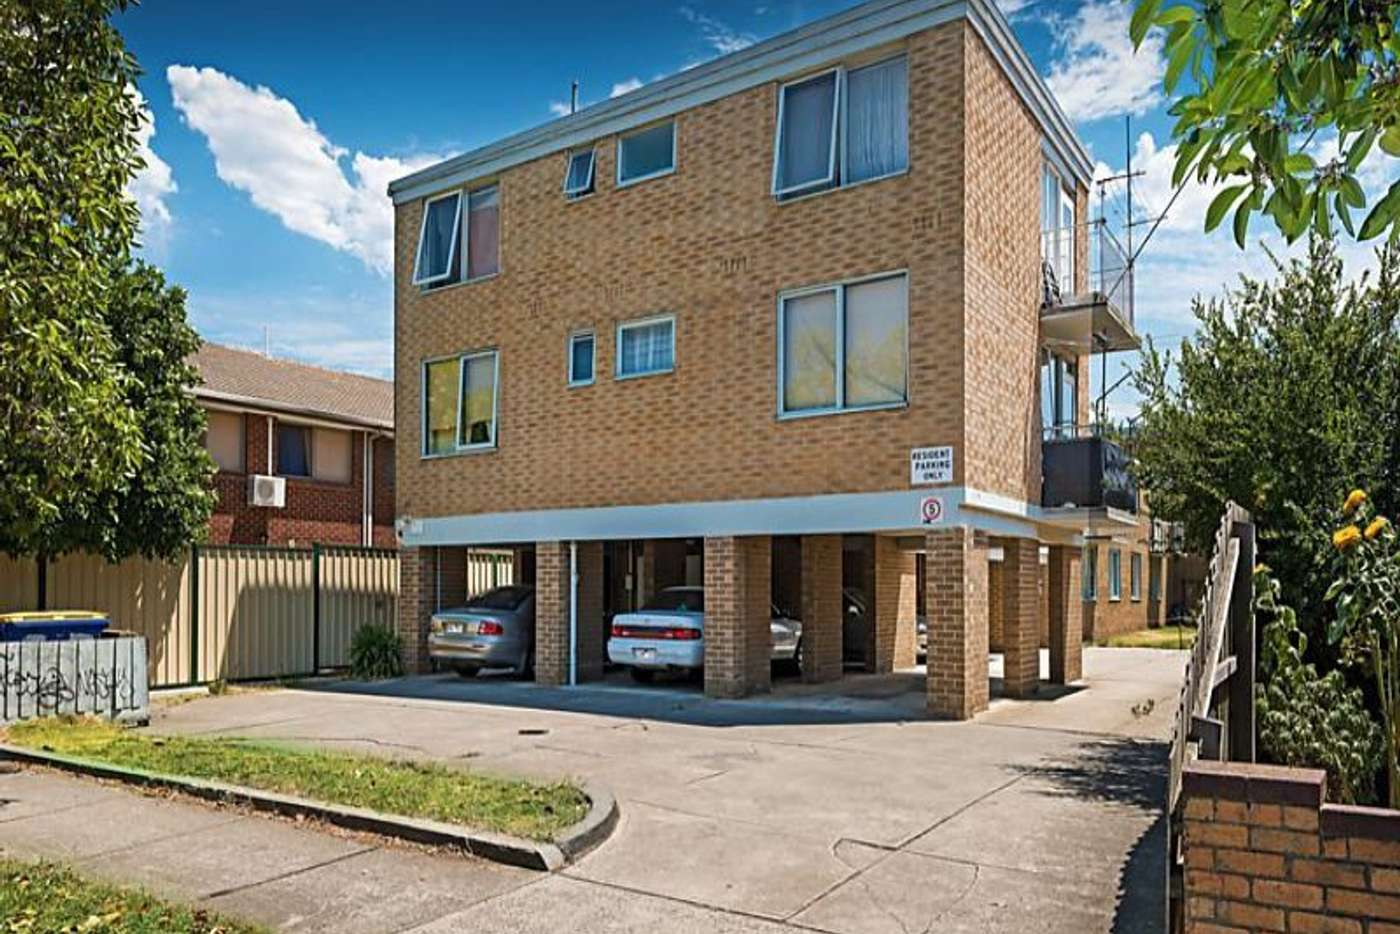 Main view of Homely flat listing, 1/29 Empire Street, Footscray VIC 3011